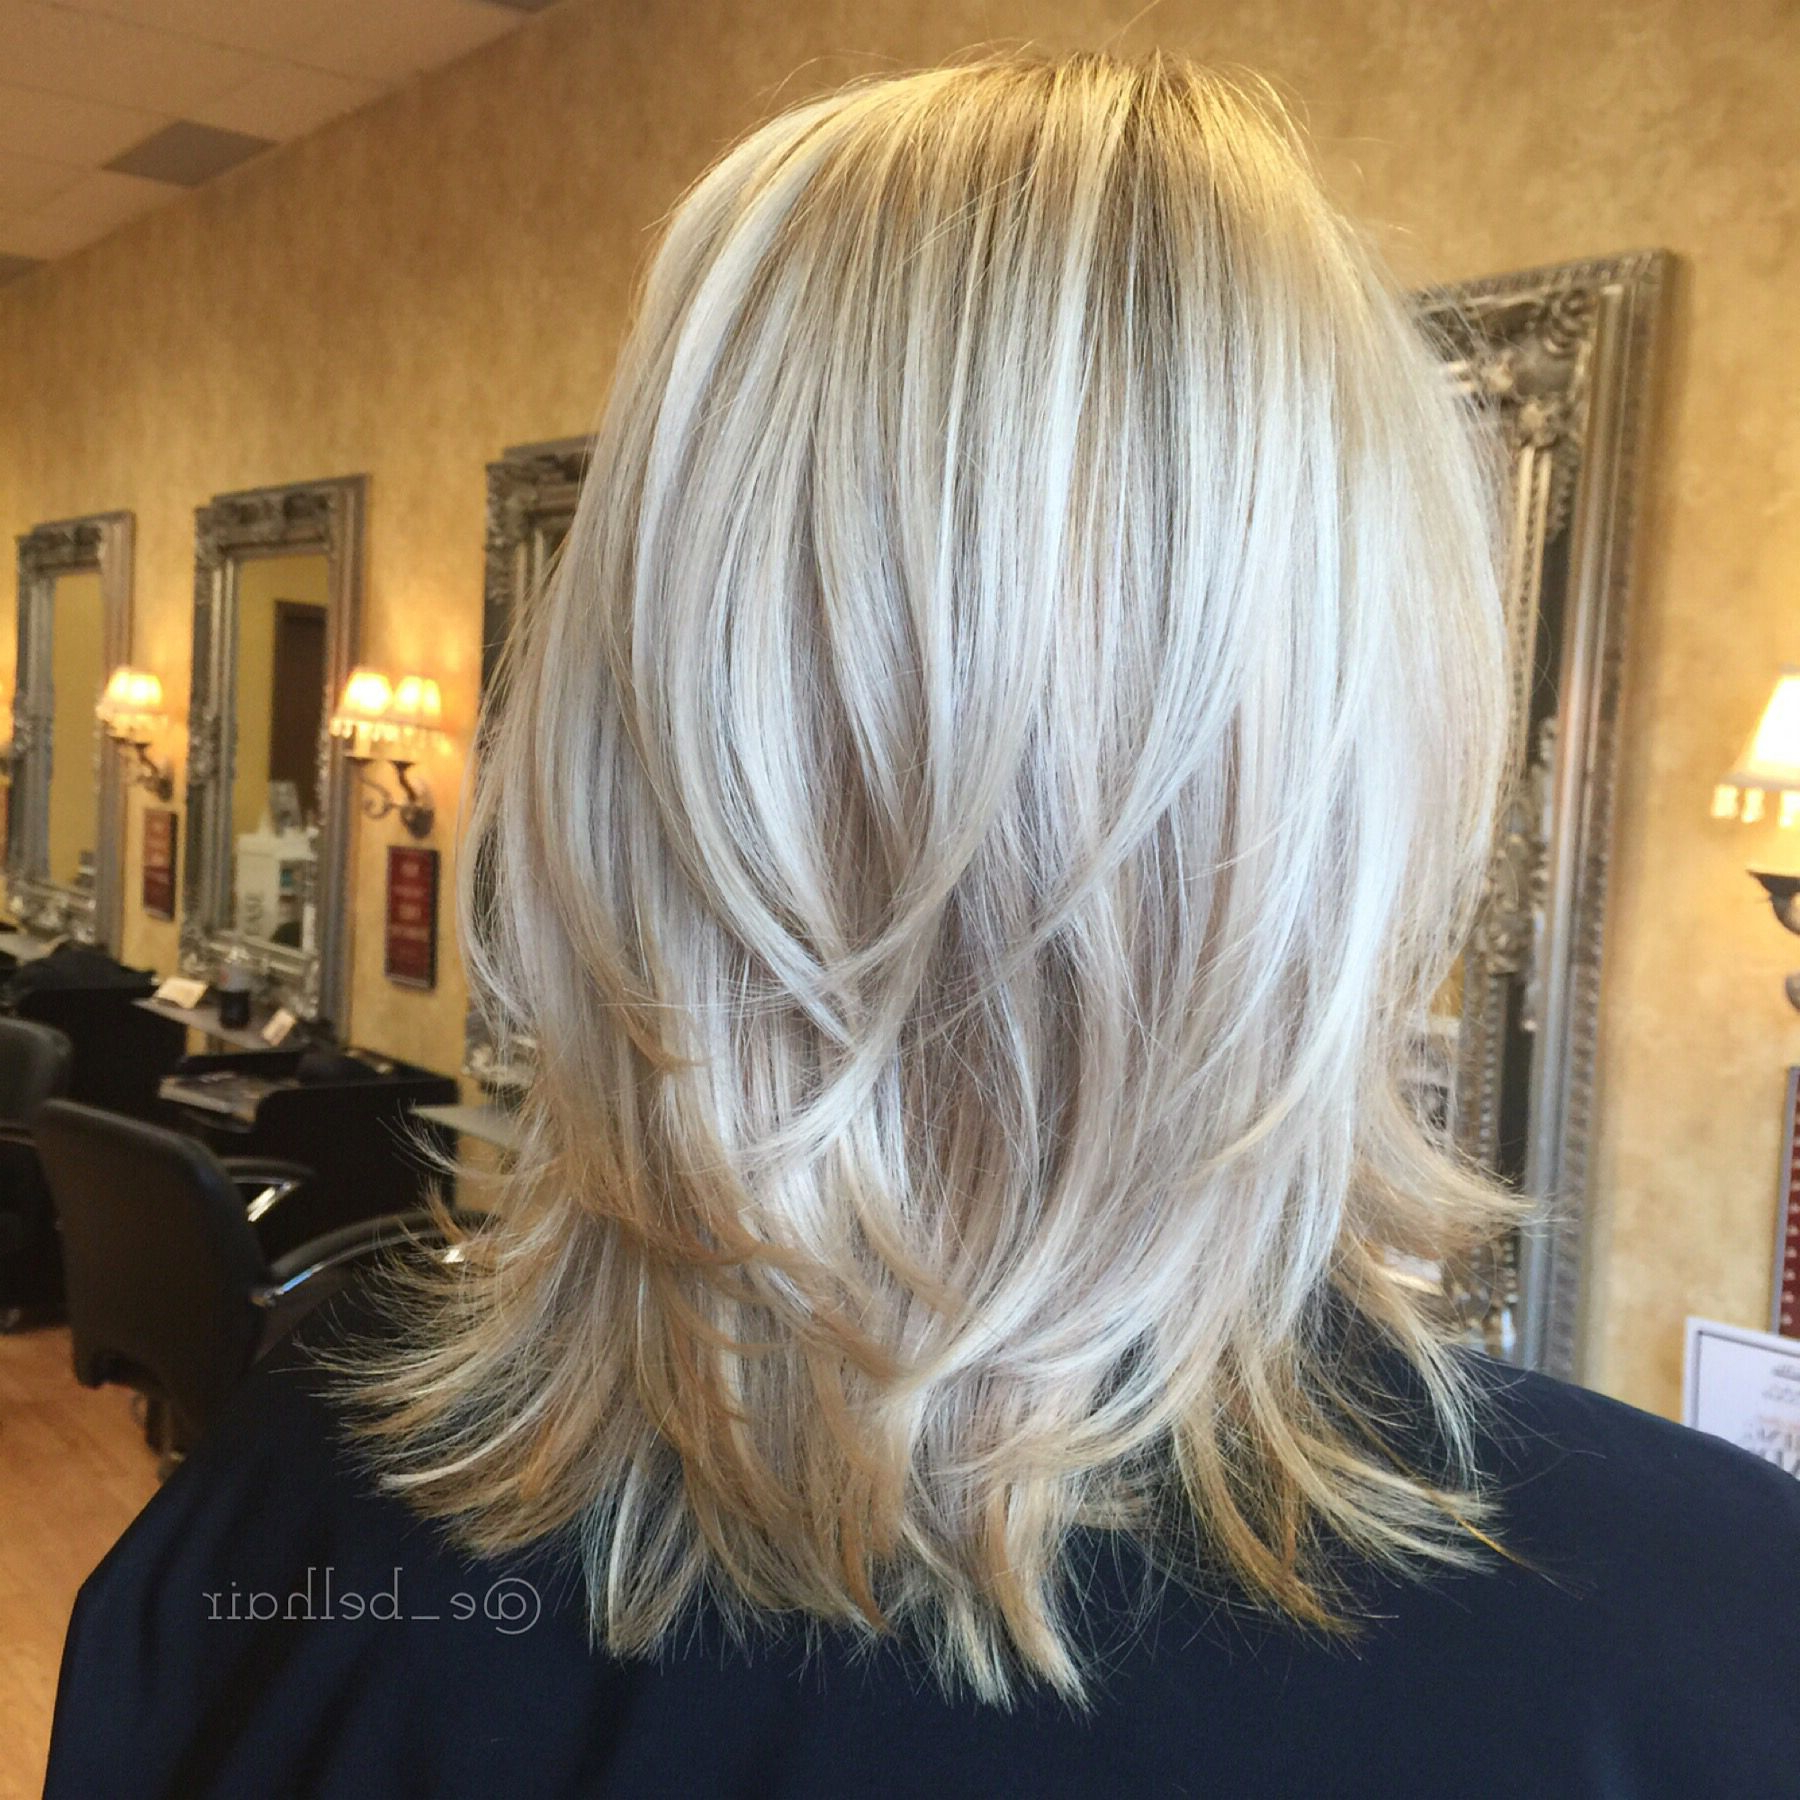 Shoulder Length Cut With Tousled Layers And Fresh Blonde Color (View 4 of 20)